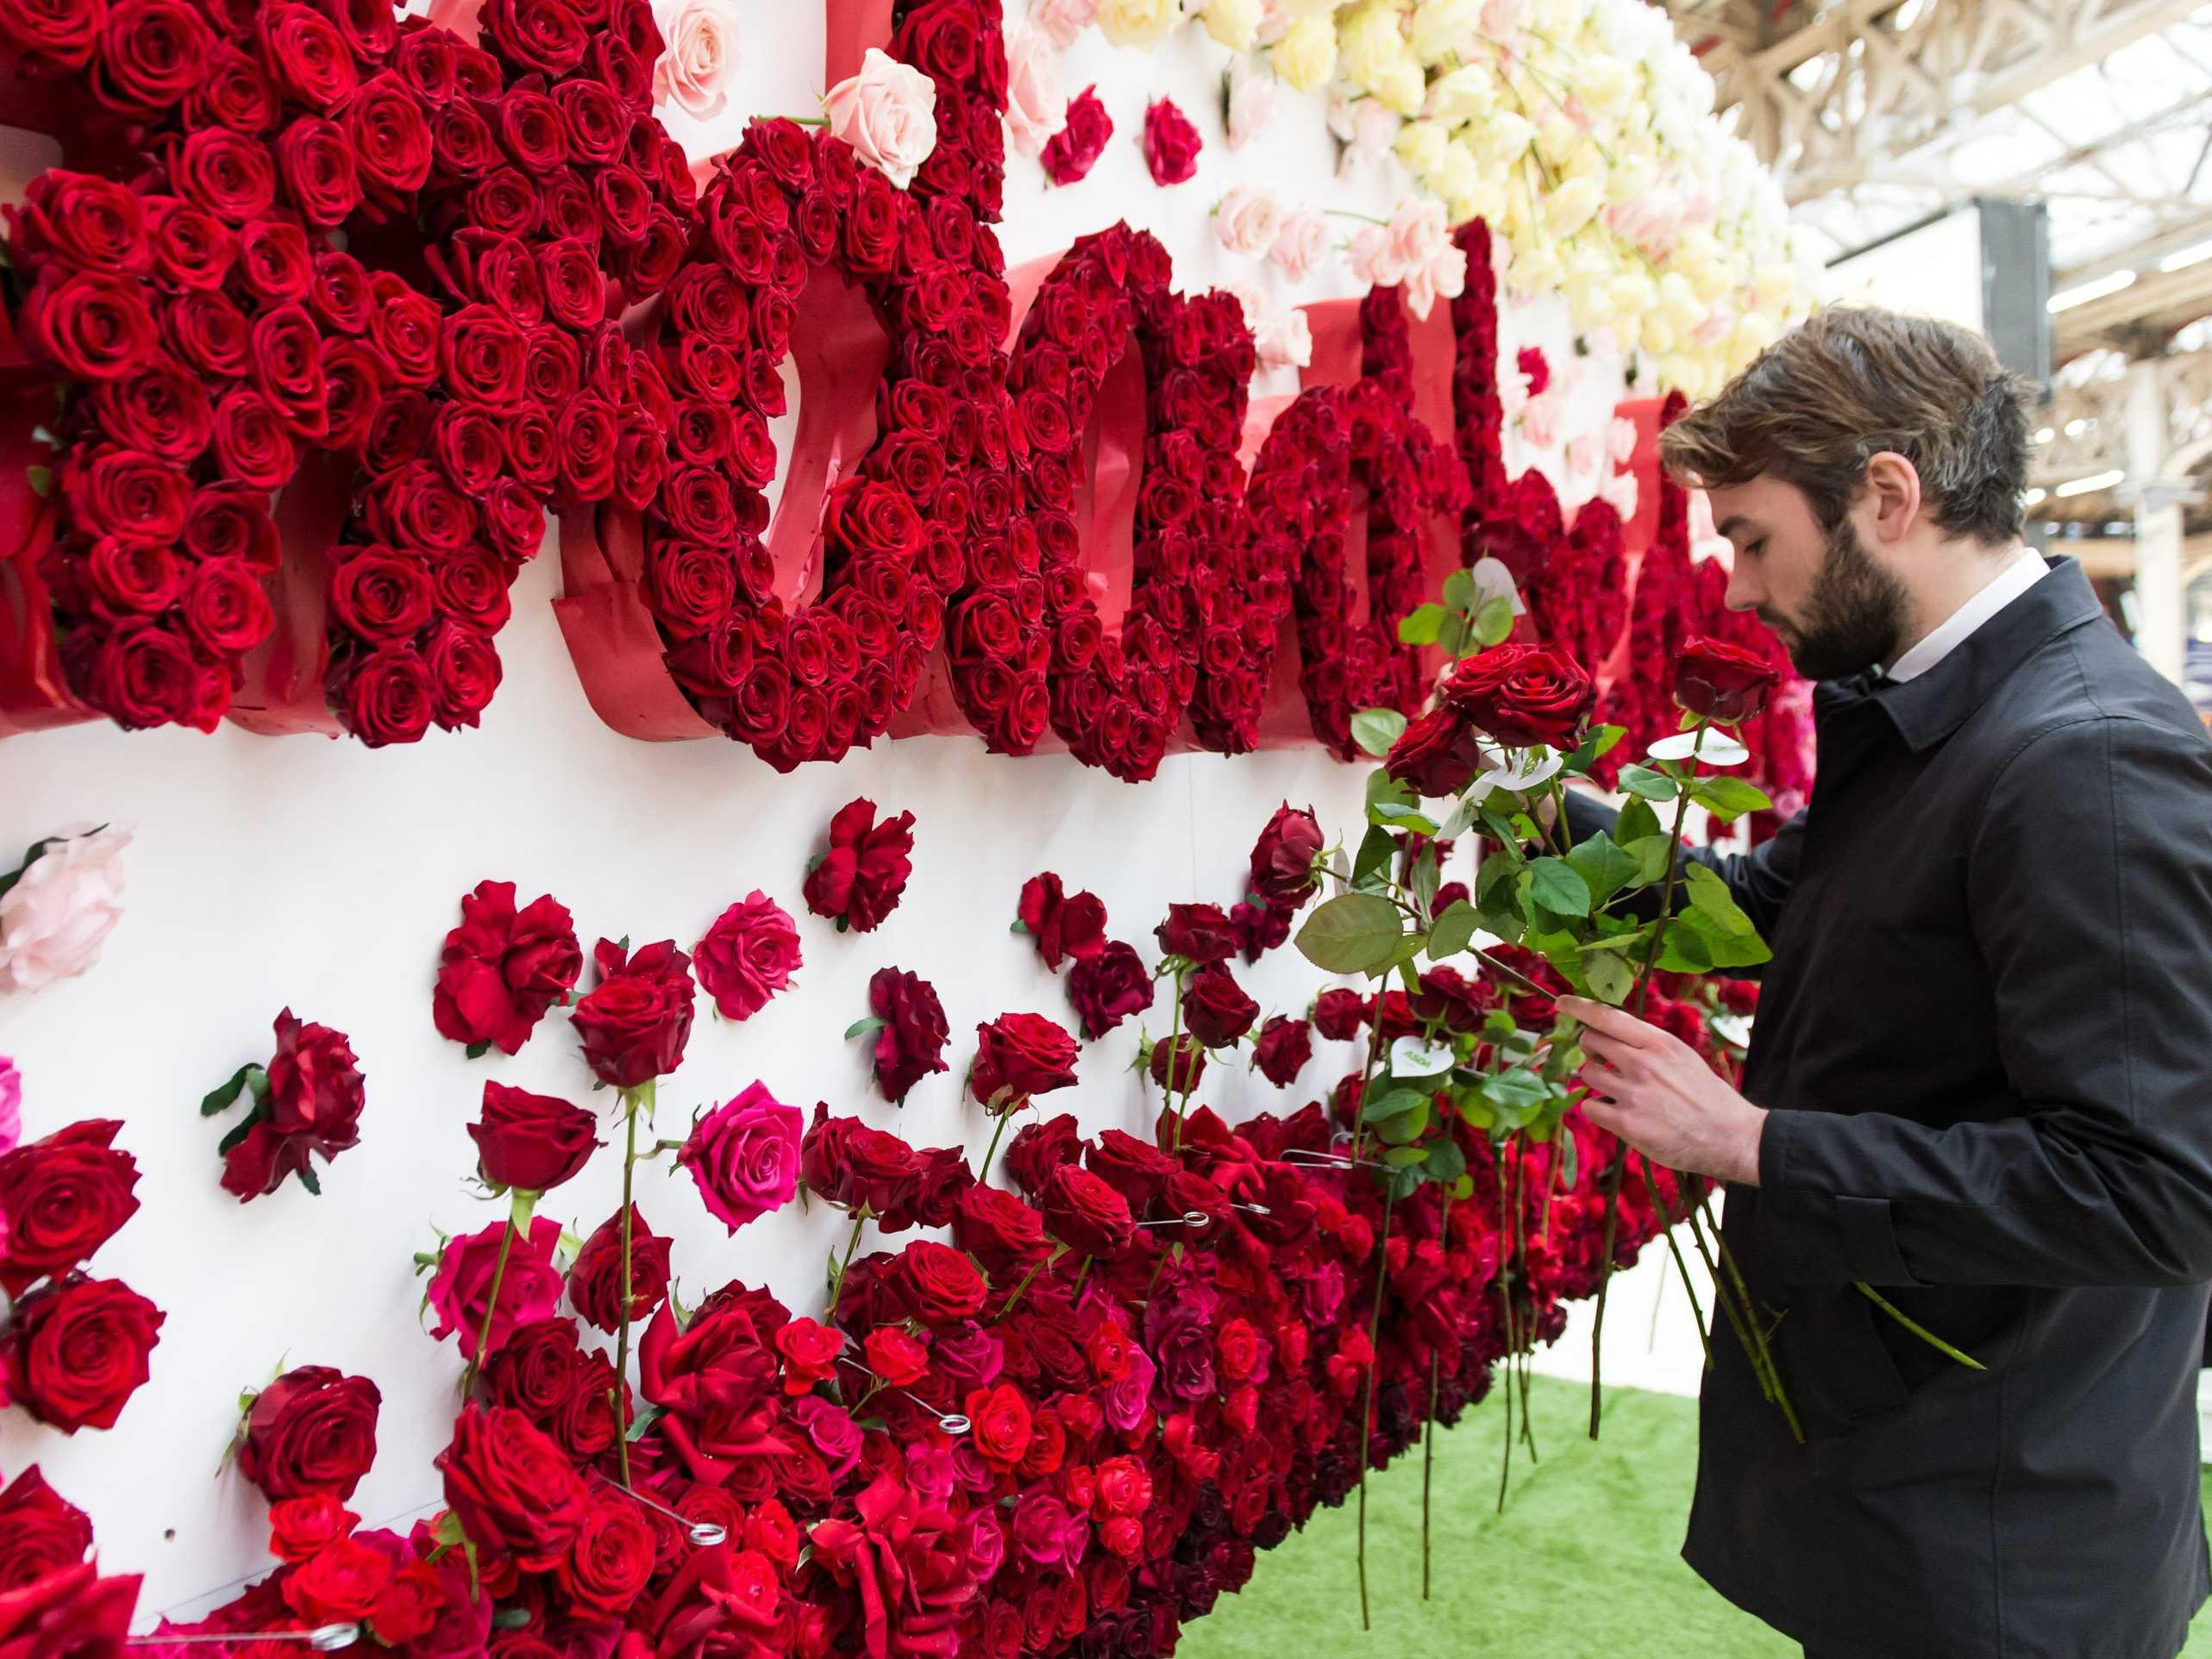 How much to spend on a gift for your partner this Valentine's Day